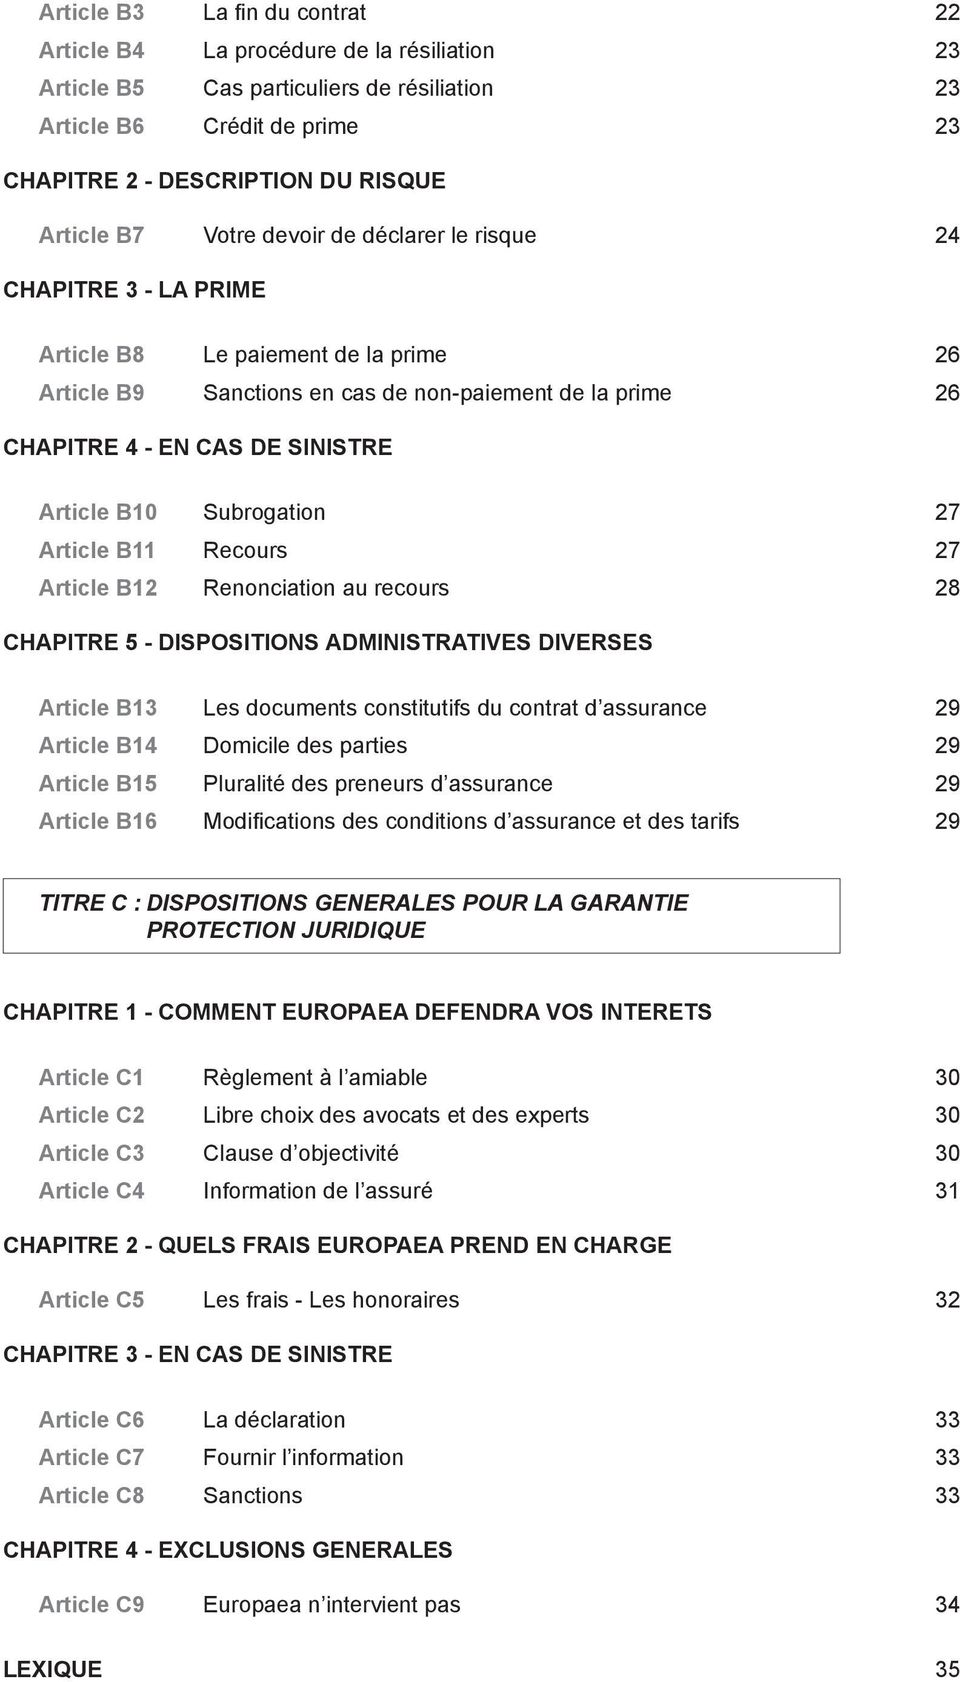 B10 Subrogation 27 Article B11 Recours 27 Article B12 Renonciation au recours 28 CHAPITRE 5 - DISPOSITIONS ADMINISTRATIVES DIVERSES Article B13 Les documents constitutifs du contrat d assurance 29